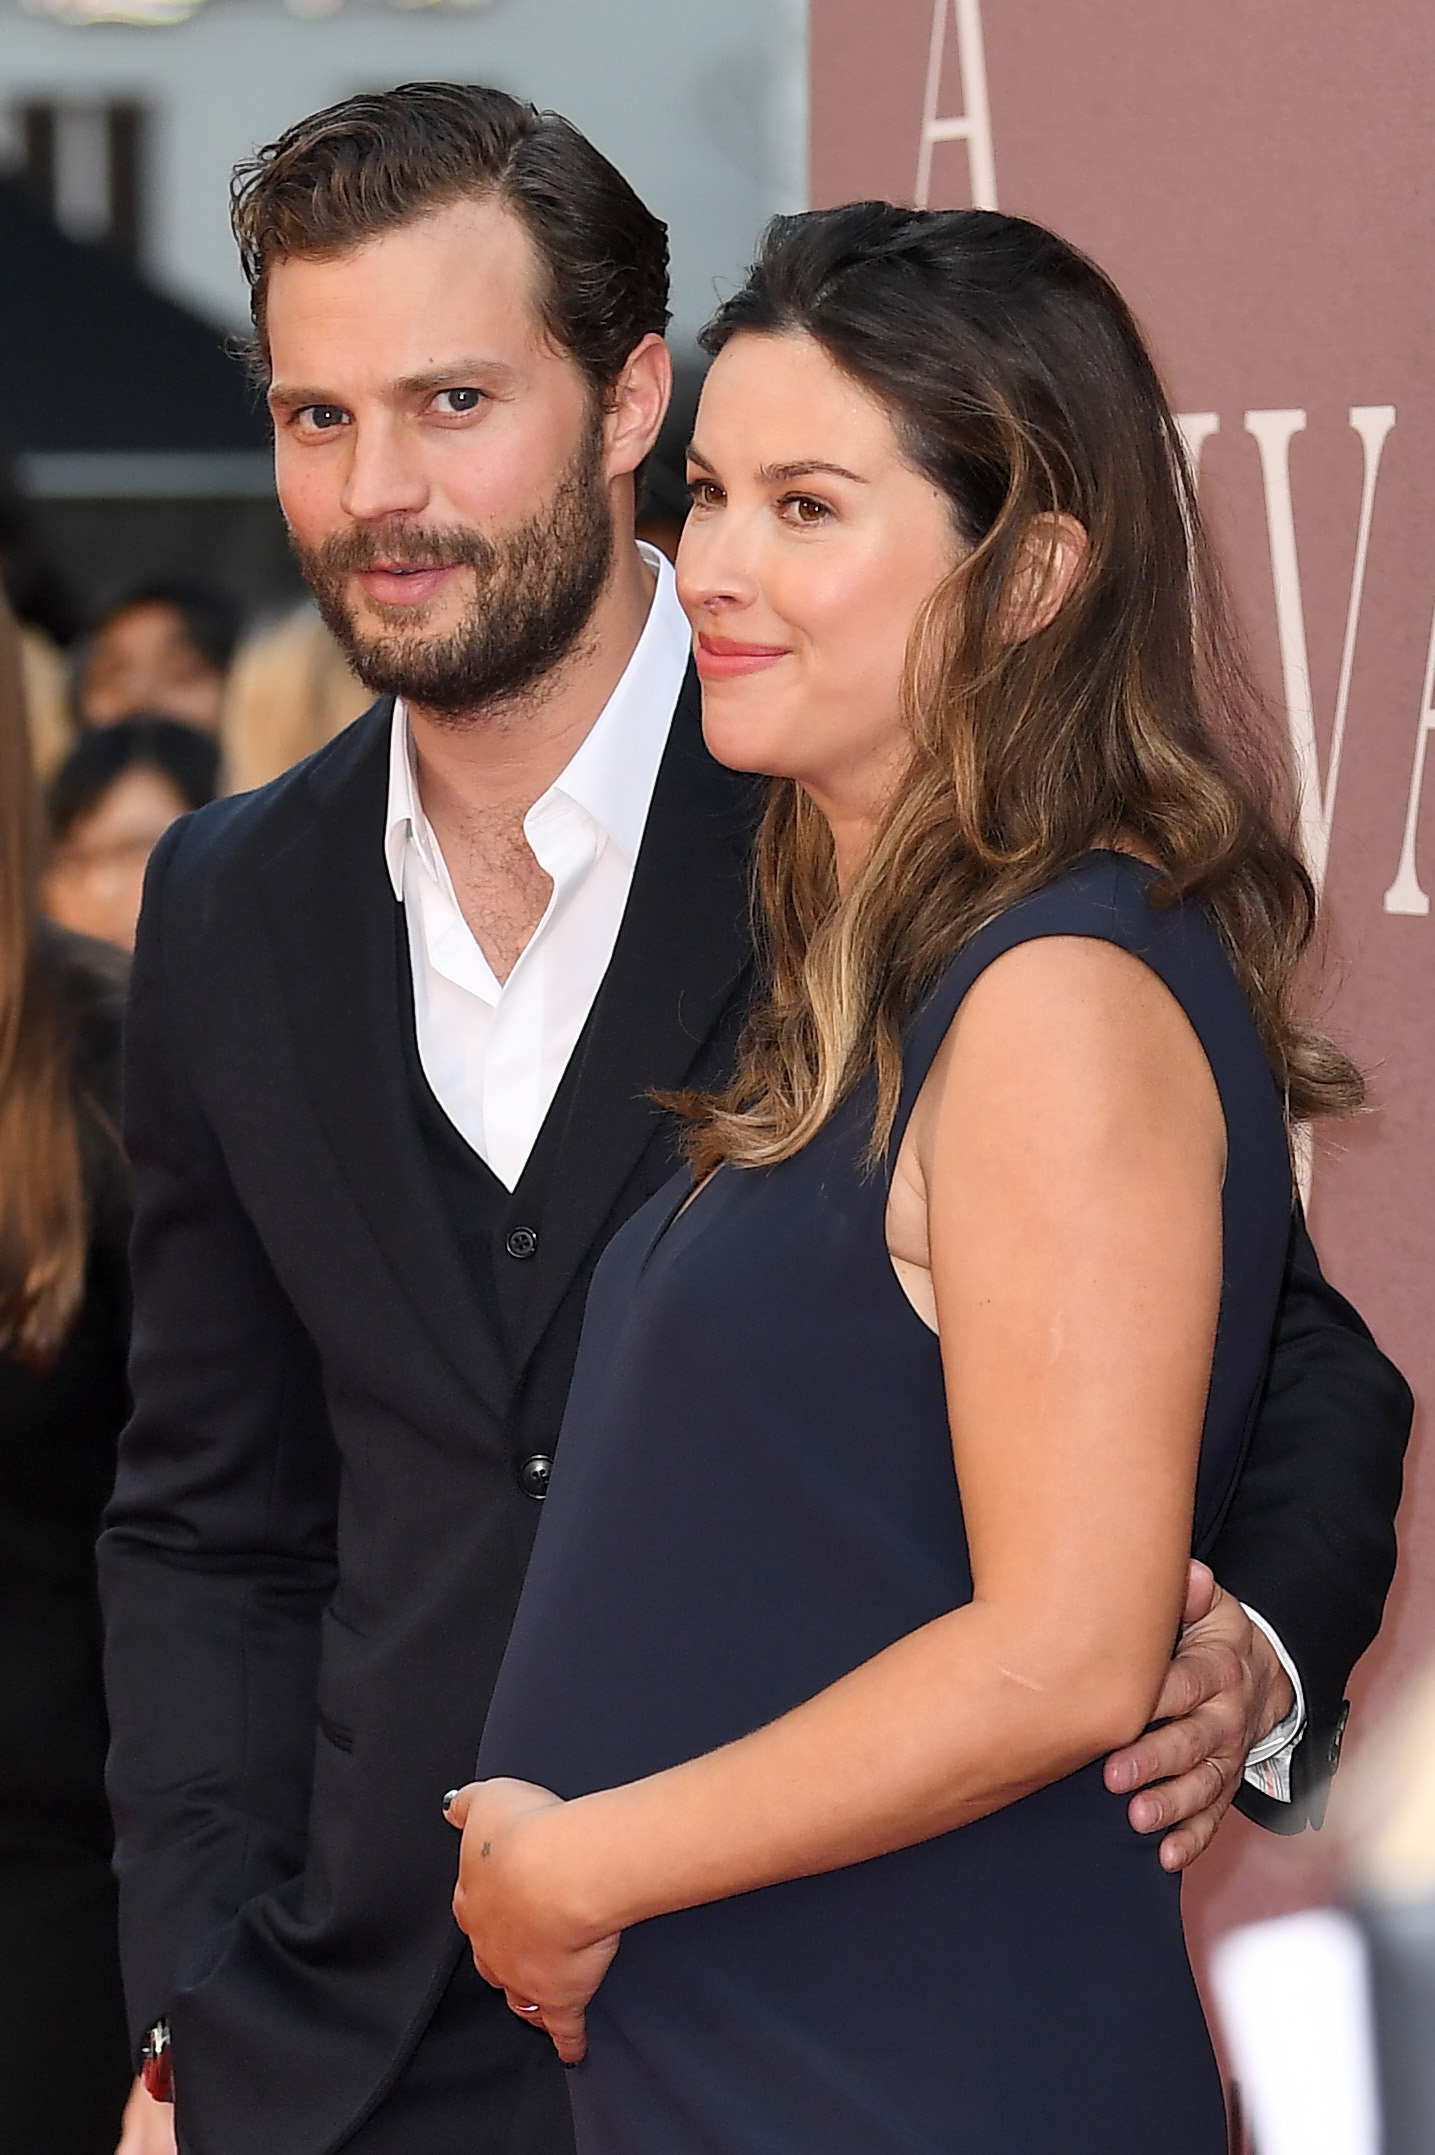 """Jamie Dornan and Amelia Warner arrive at the premiere of """"A Private War"""" at the BFI London Film Festival on Oct. 20, 2018."""